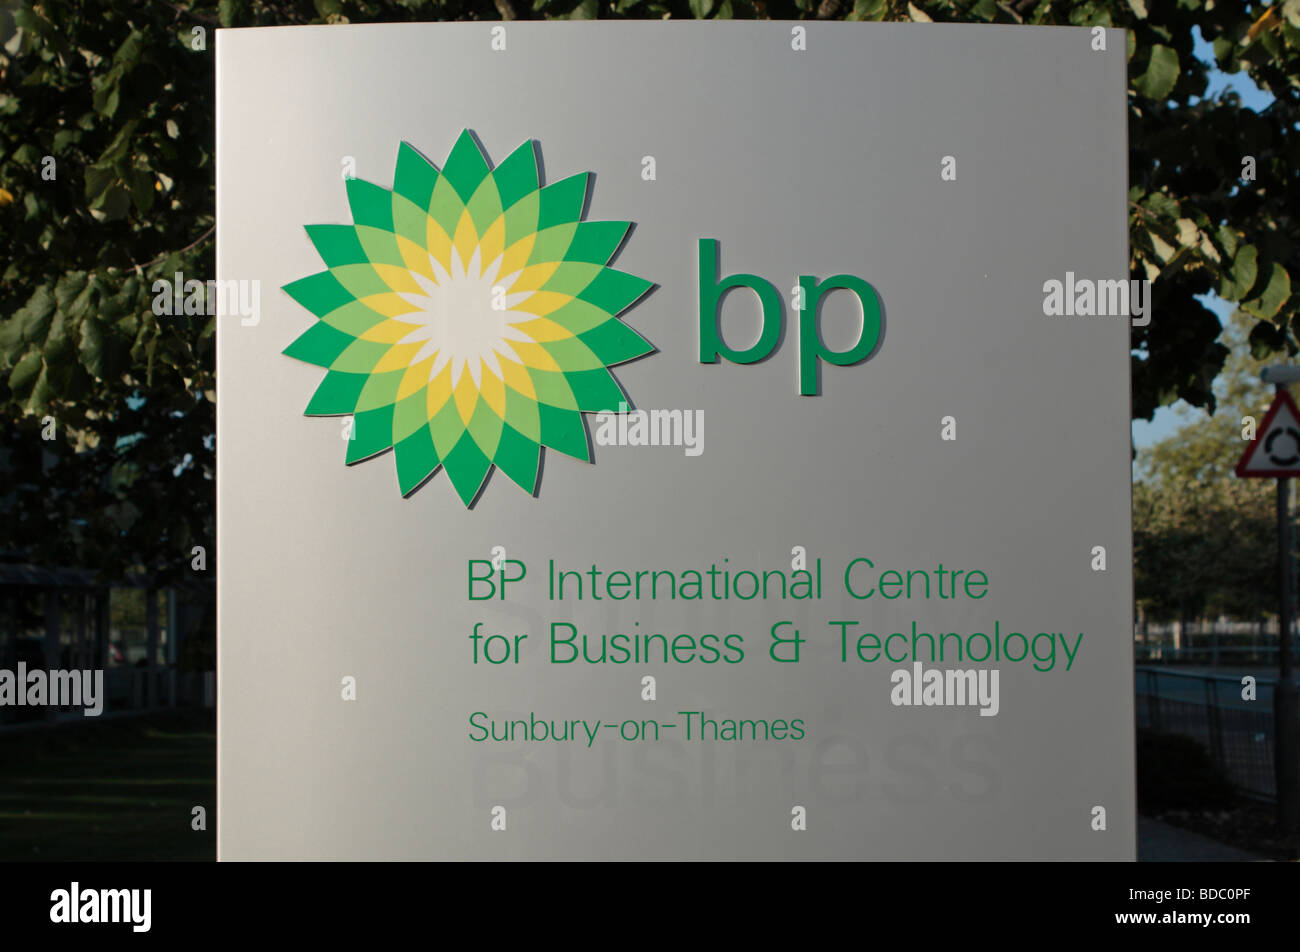 bp international sunbury-on-thames middlesex